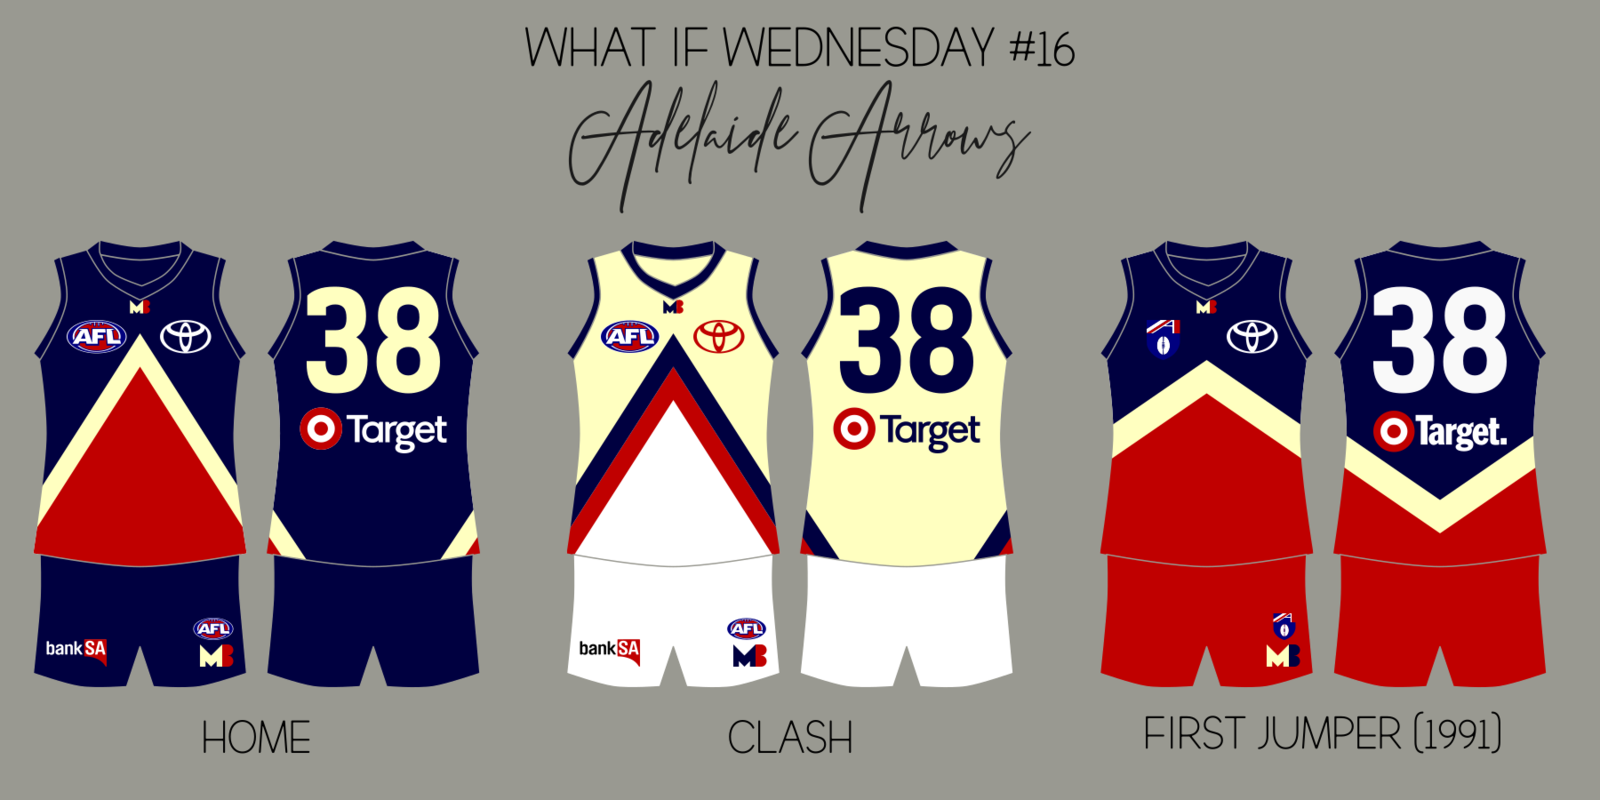 16 Adelaide Arrows.png